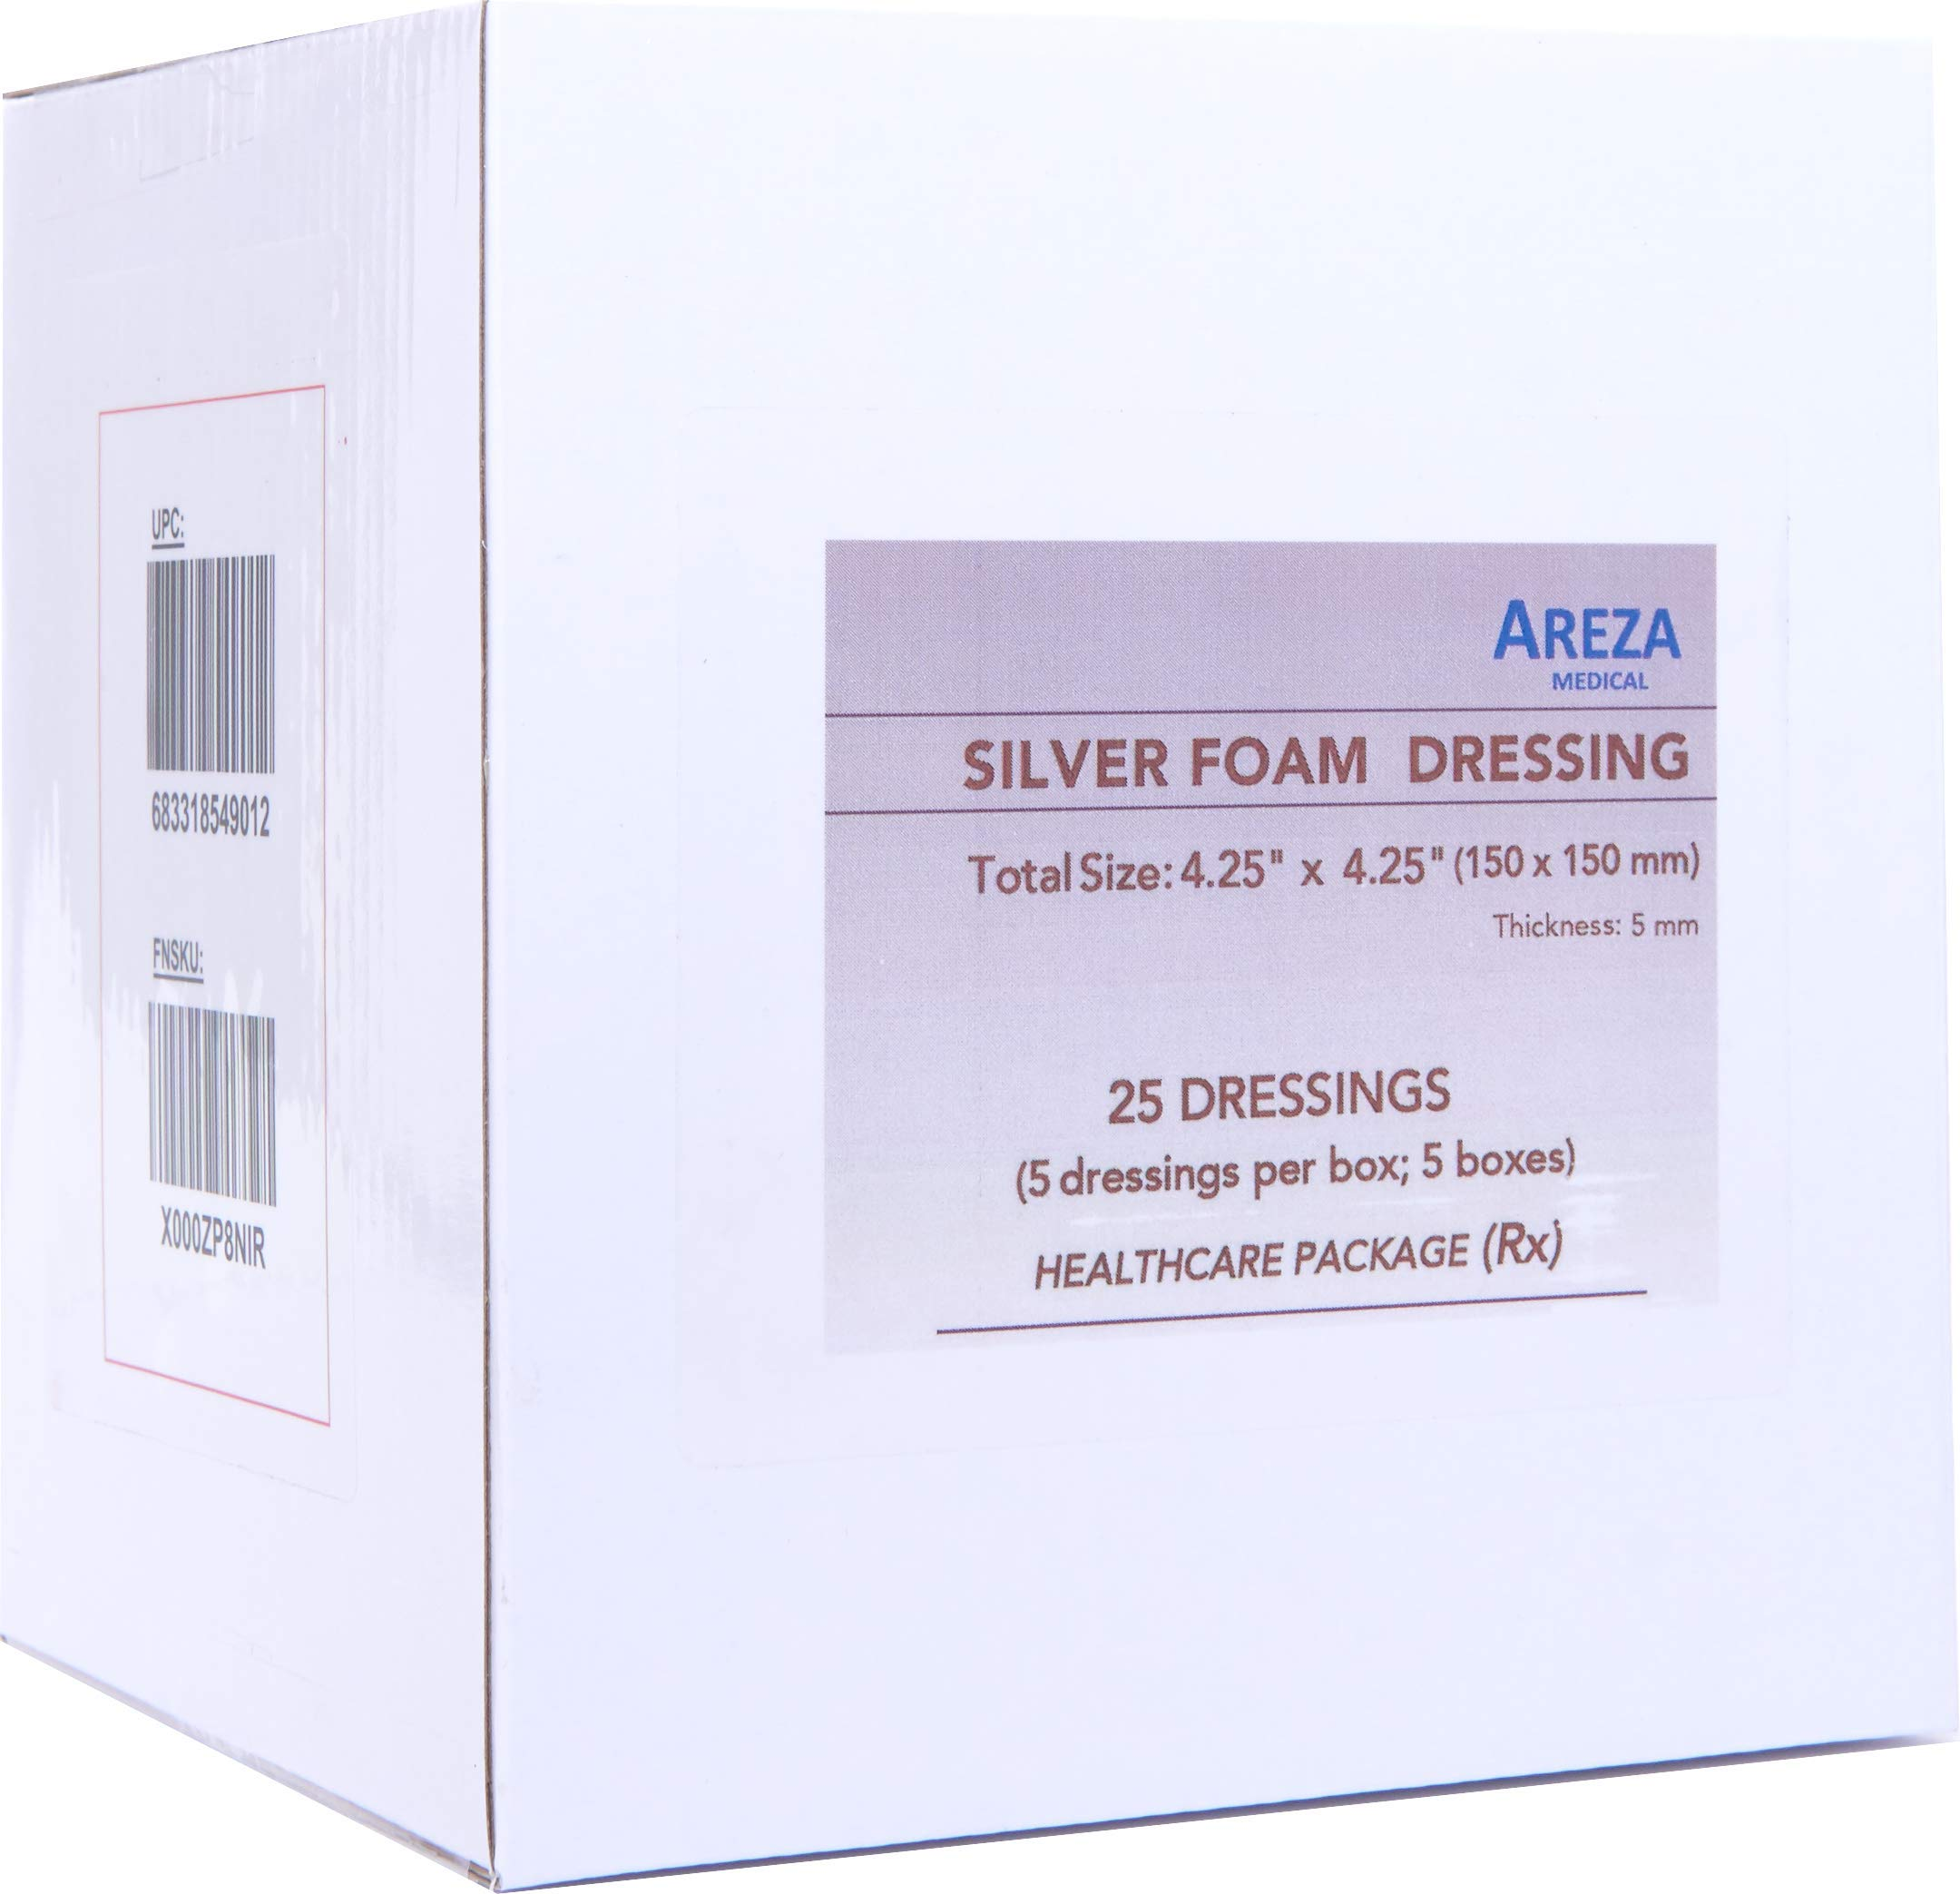 Silver Foam Dressing Sterile 4.25''x4.25'' 25 Dressings (Healthcare Provider Package); Wound Dressing by Areza Medical by Areza Medical